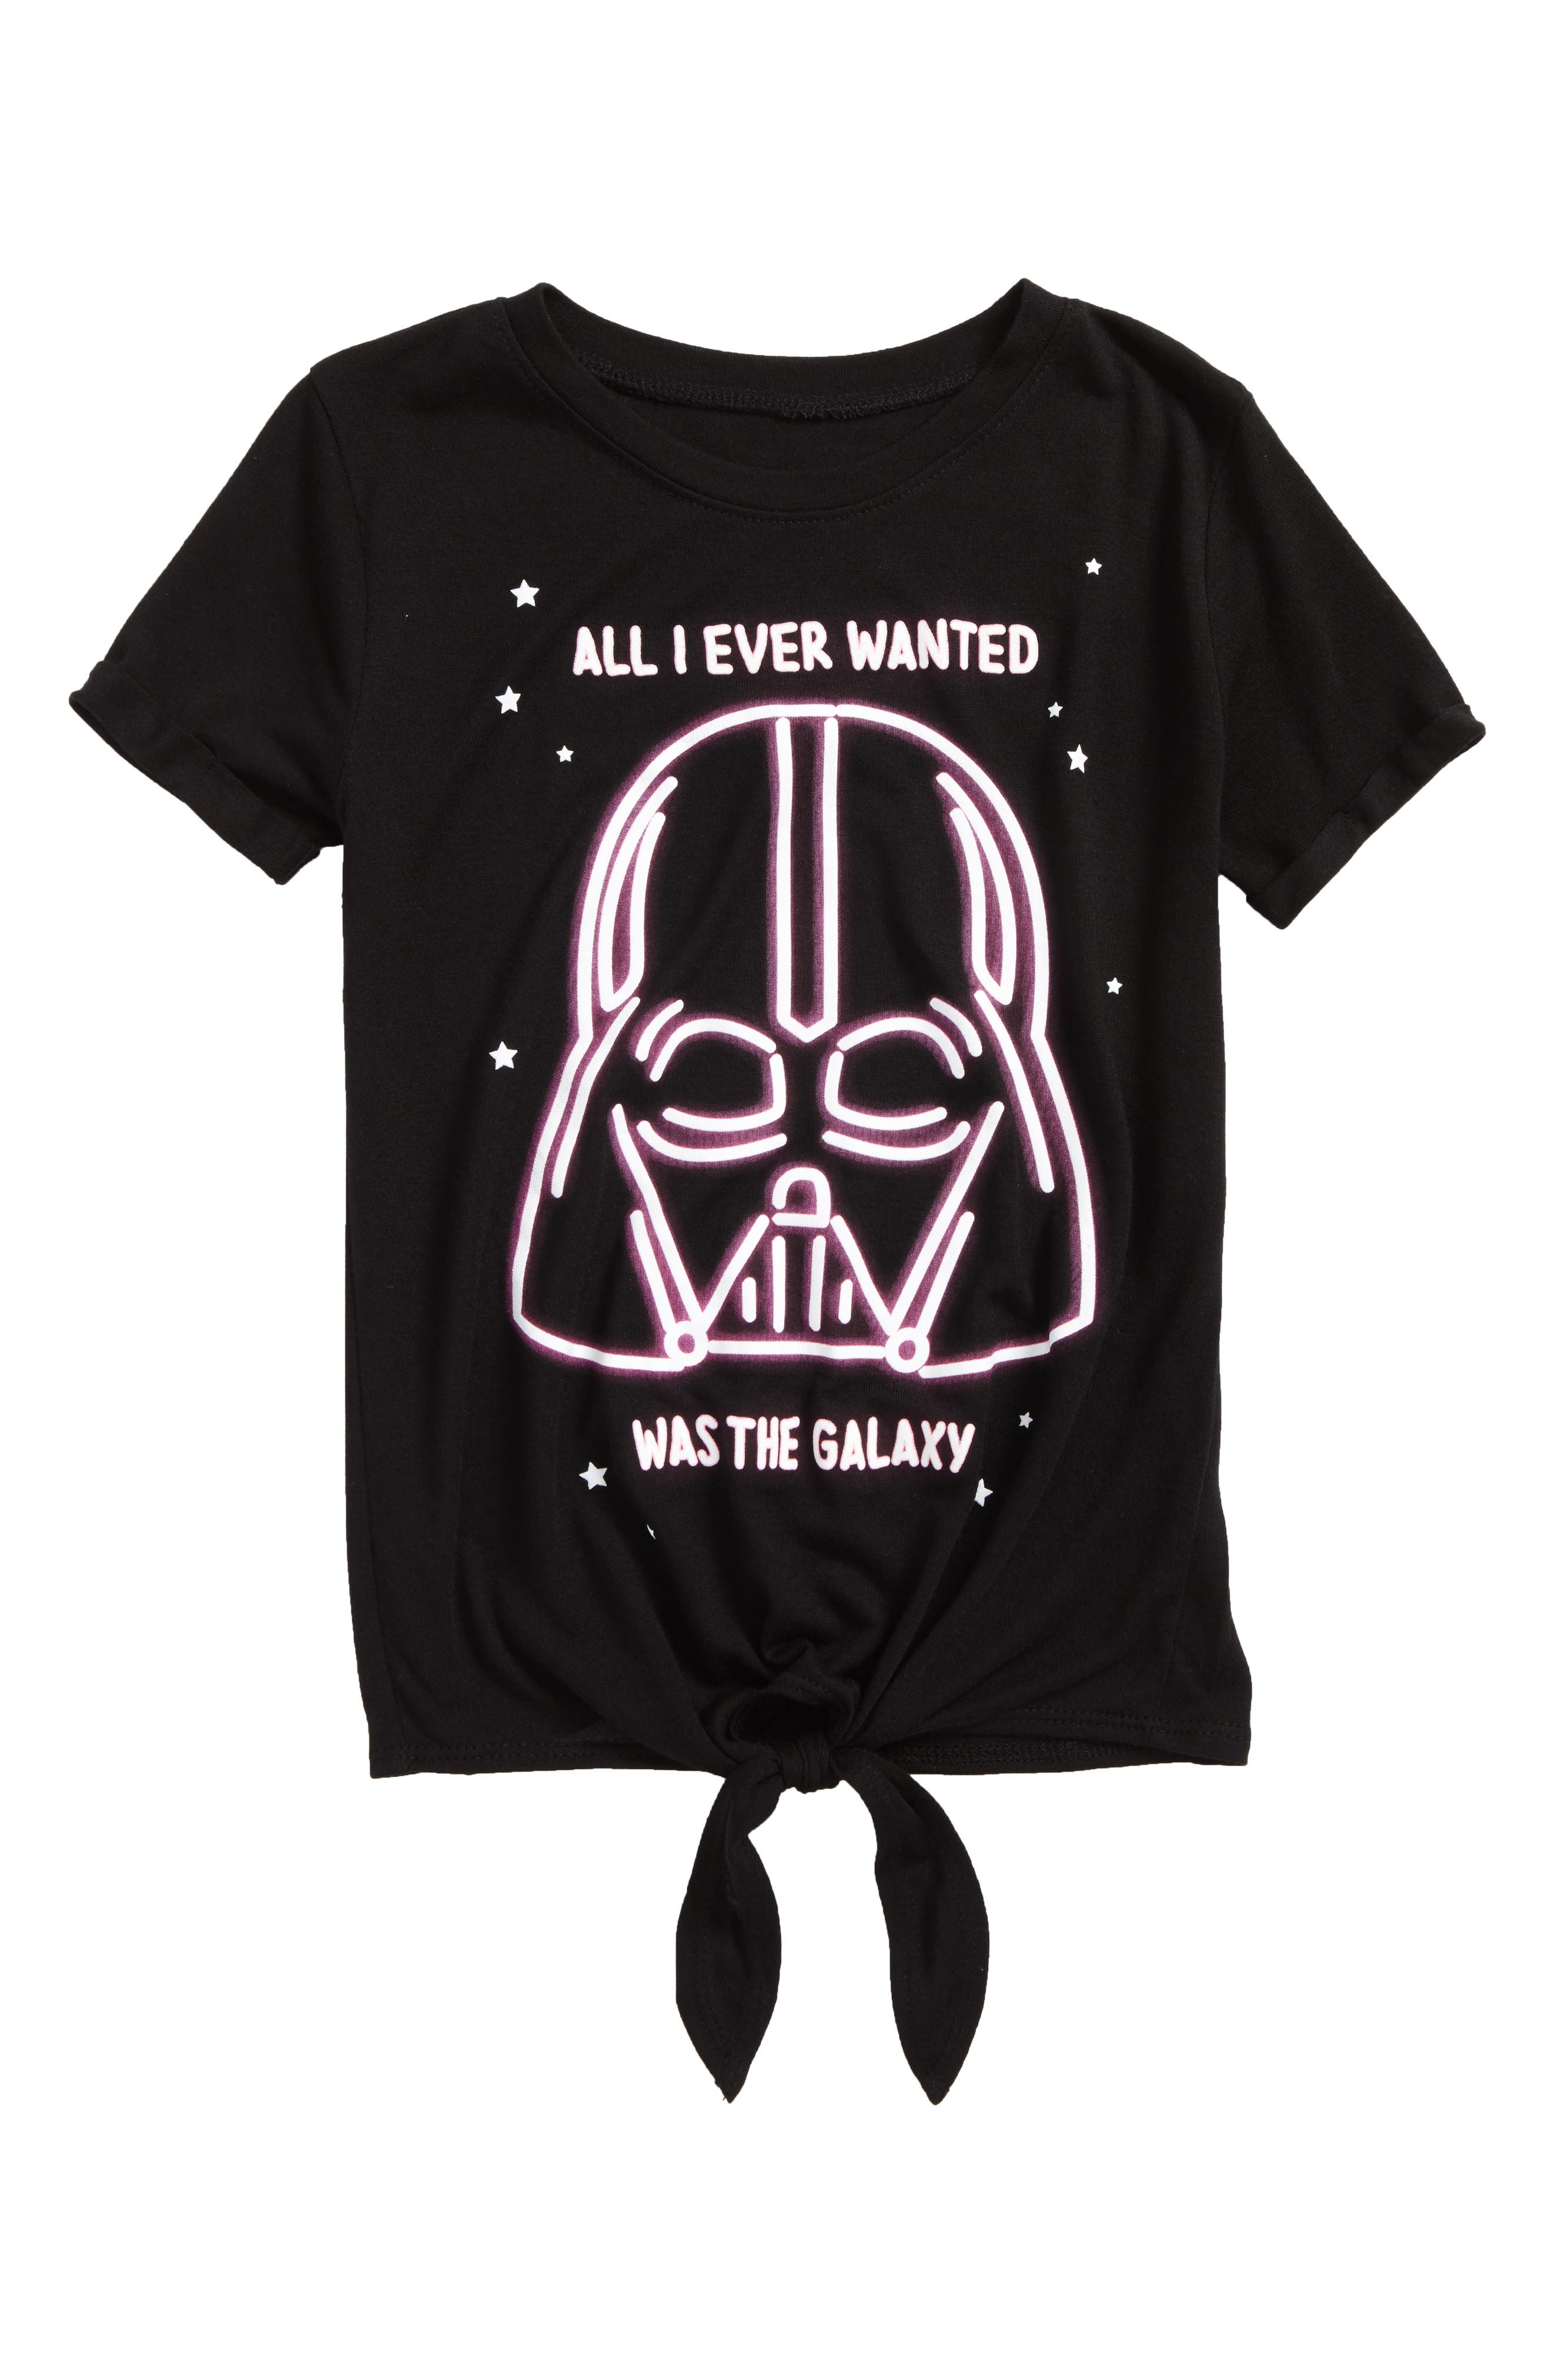 Alternate Image 1 Selected - Mighty Fine Star Wars™ All I Ever Wanted Graphic Tee (Toddler Girls, Little Girls & Big Girls)